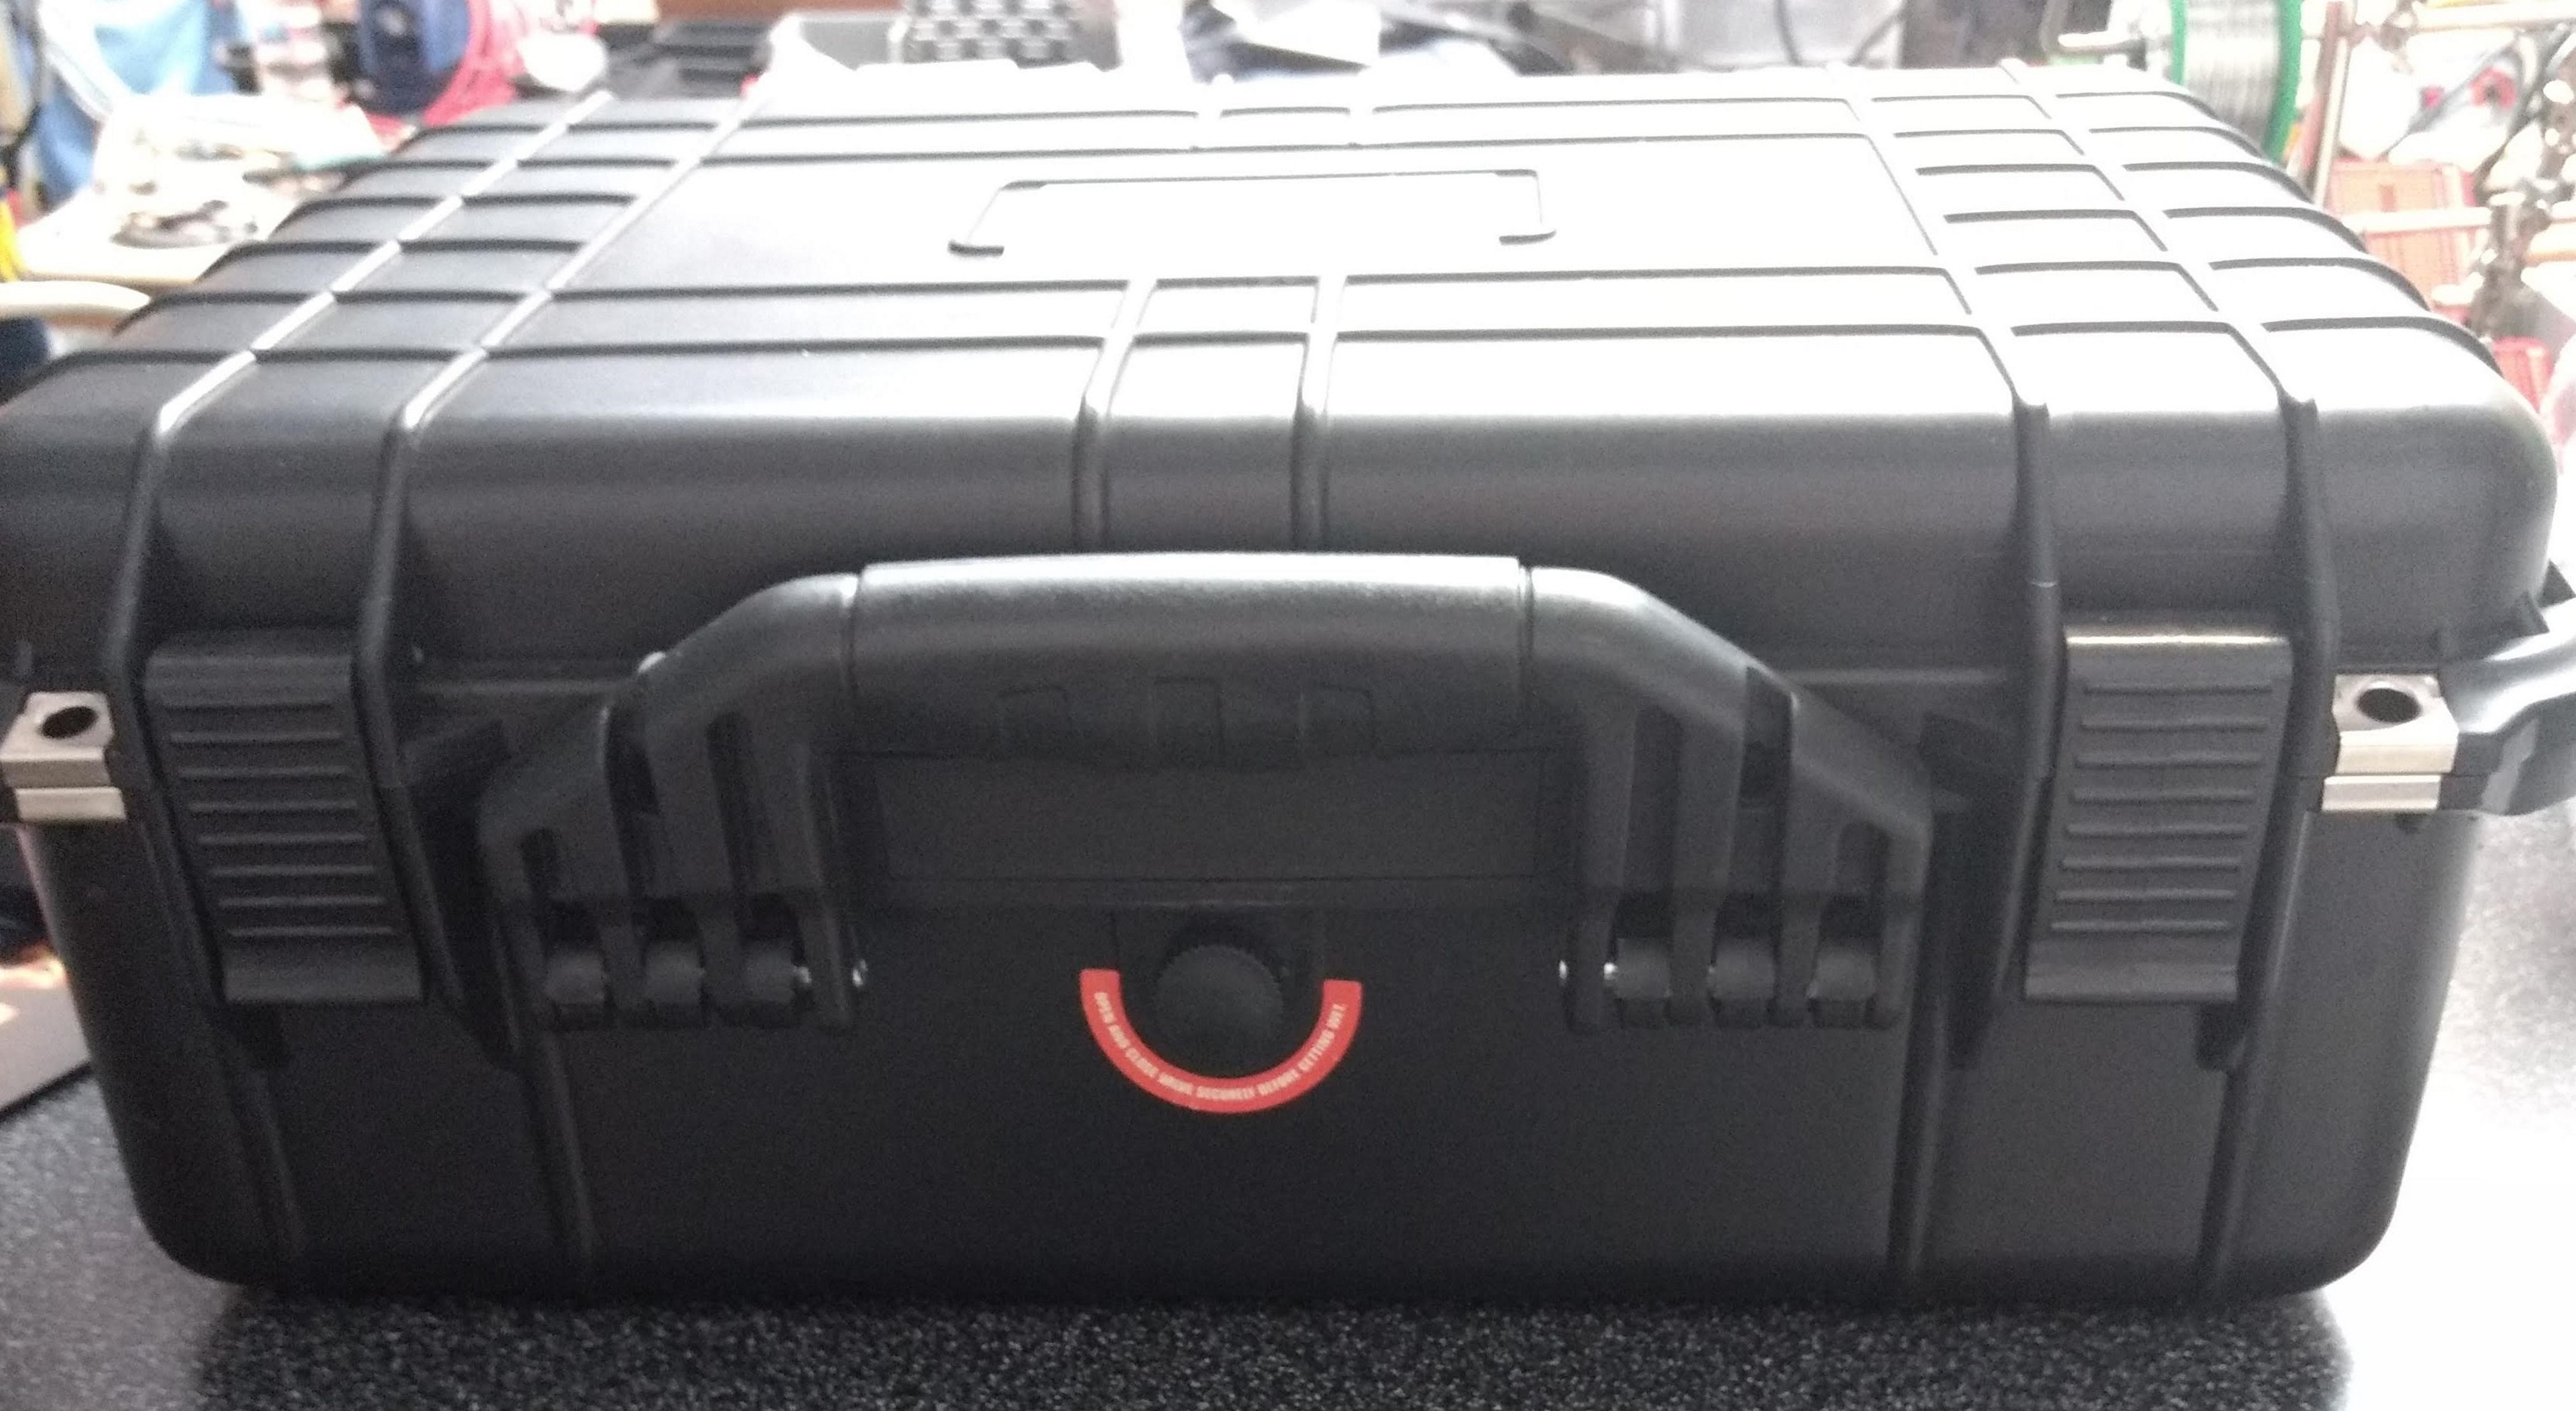 Blaze Technology Briefcase DAQ